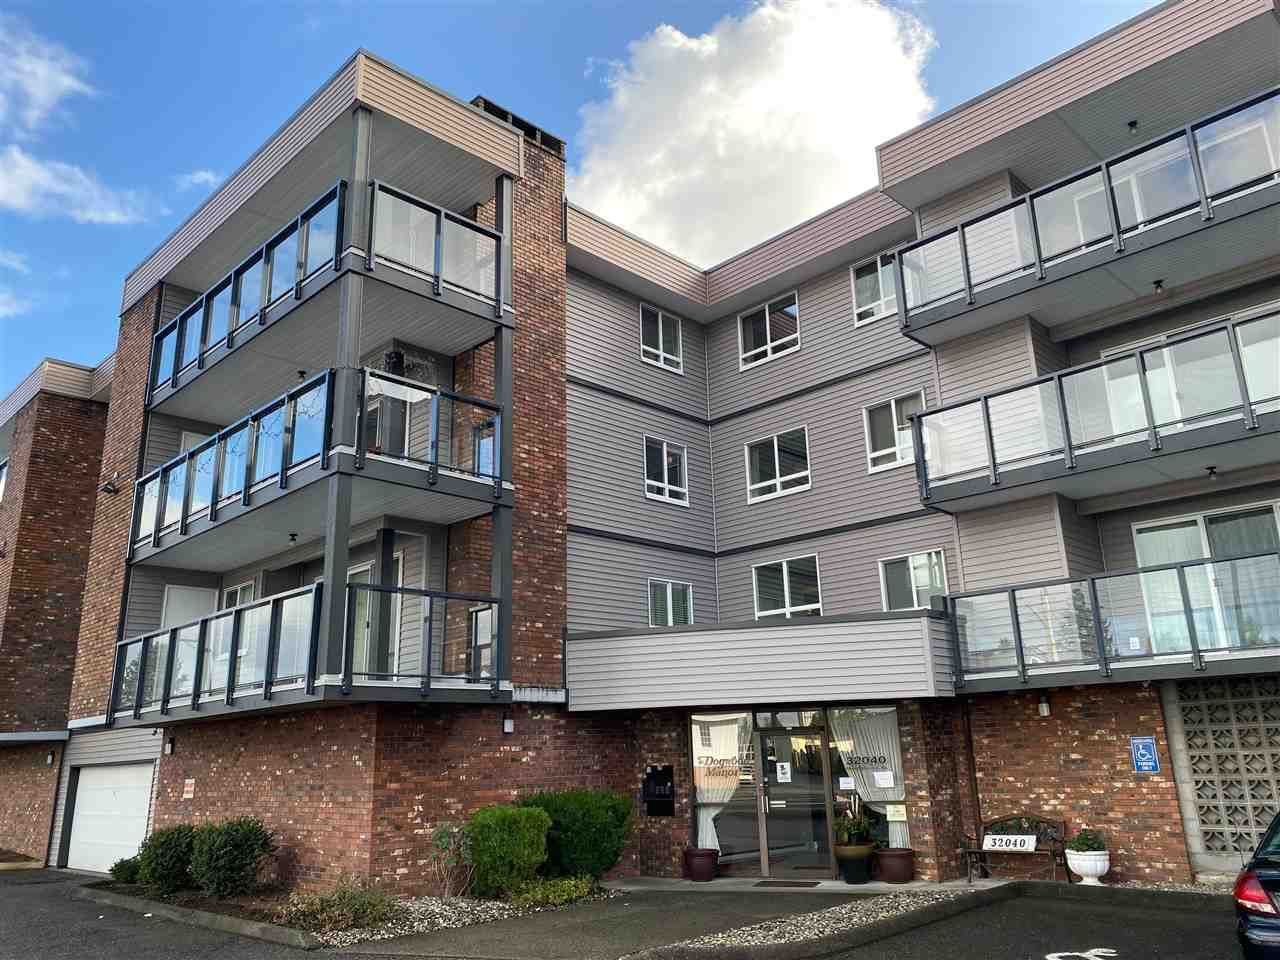 """Main Photo: 307 32040 PEARDONVILLE Road in Abbotsford: Abbotsford West Condo for sale in """"DOGWOOD"""" : MLS®# R2526573"""